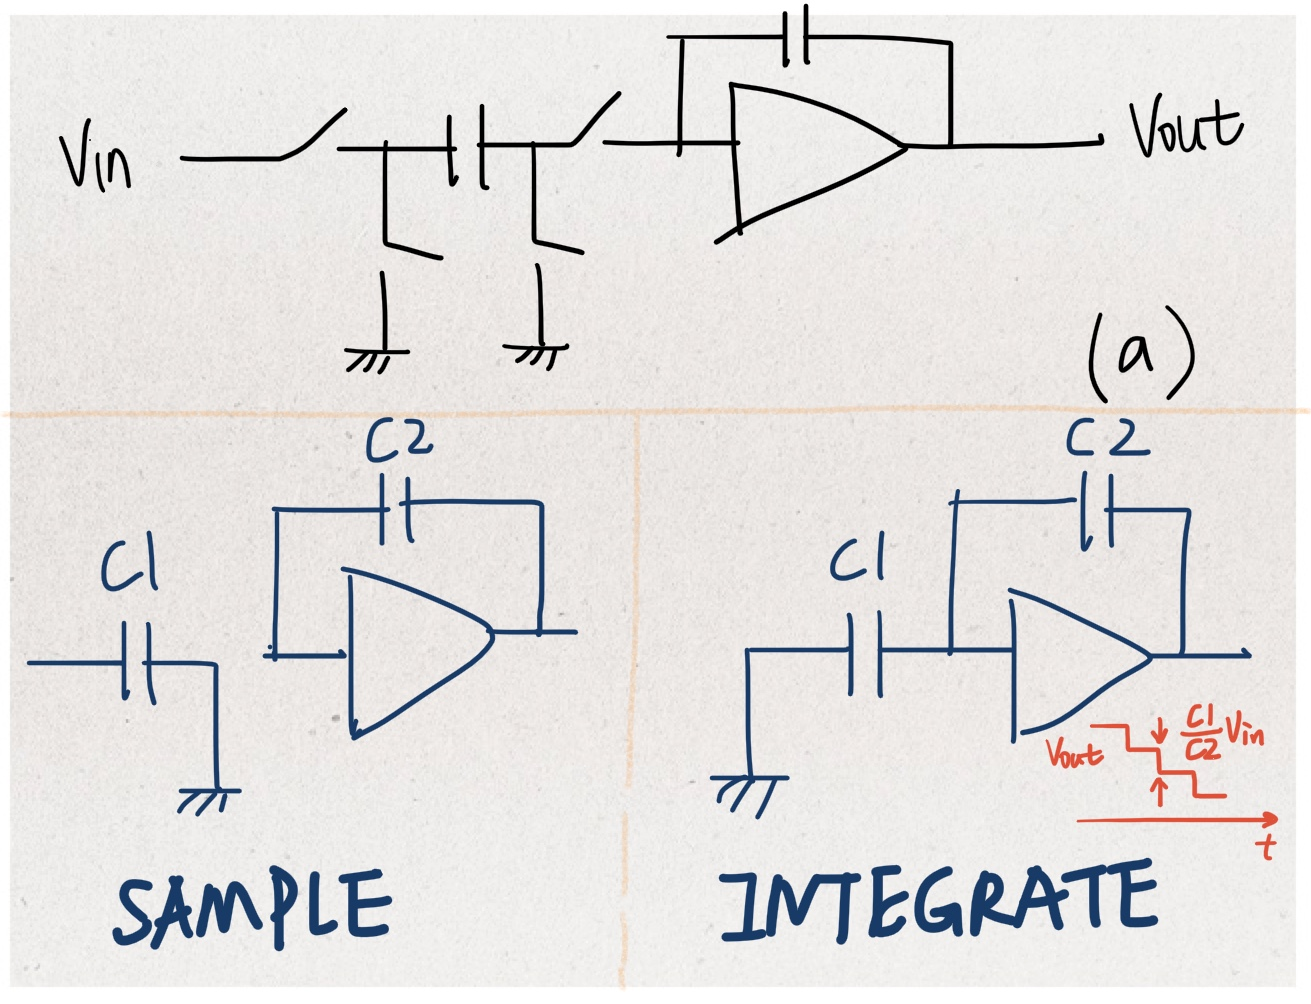 integrator_2_phases